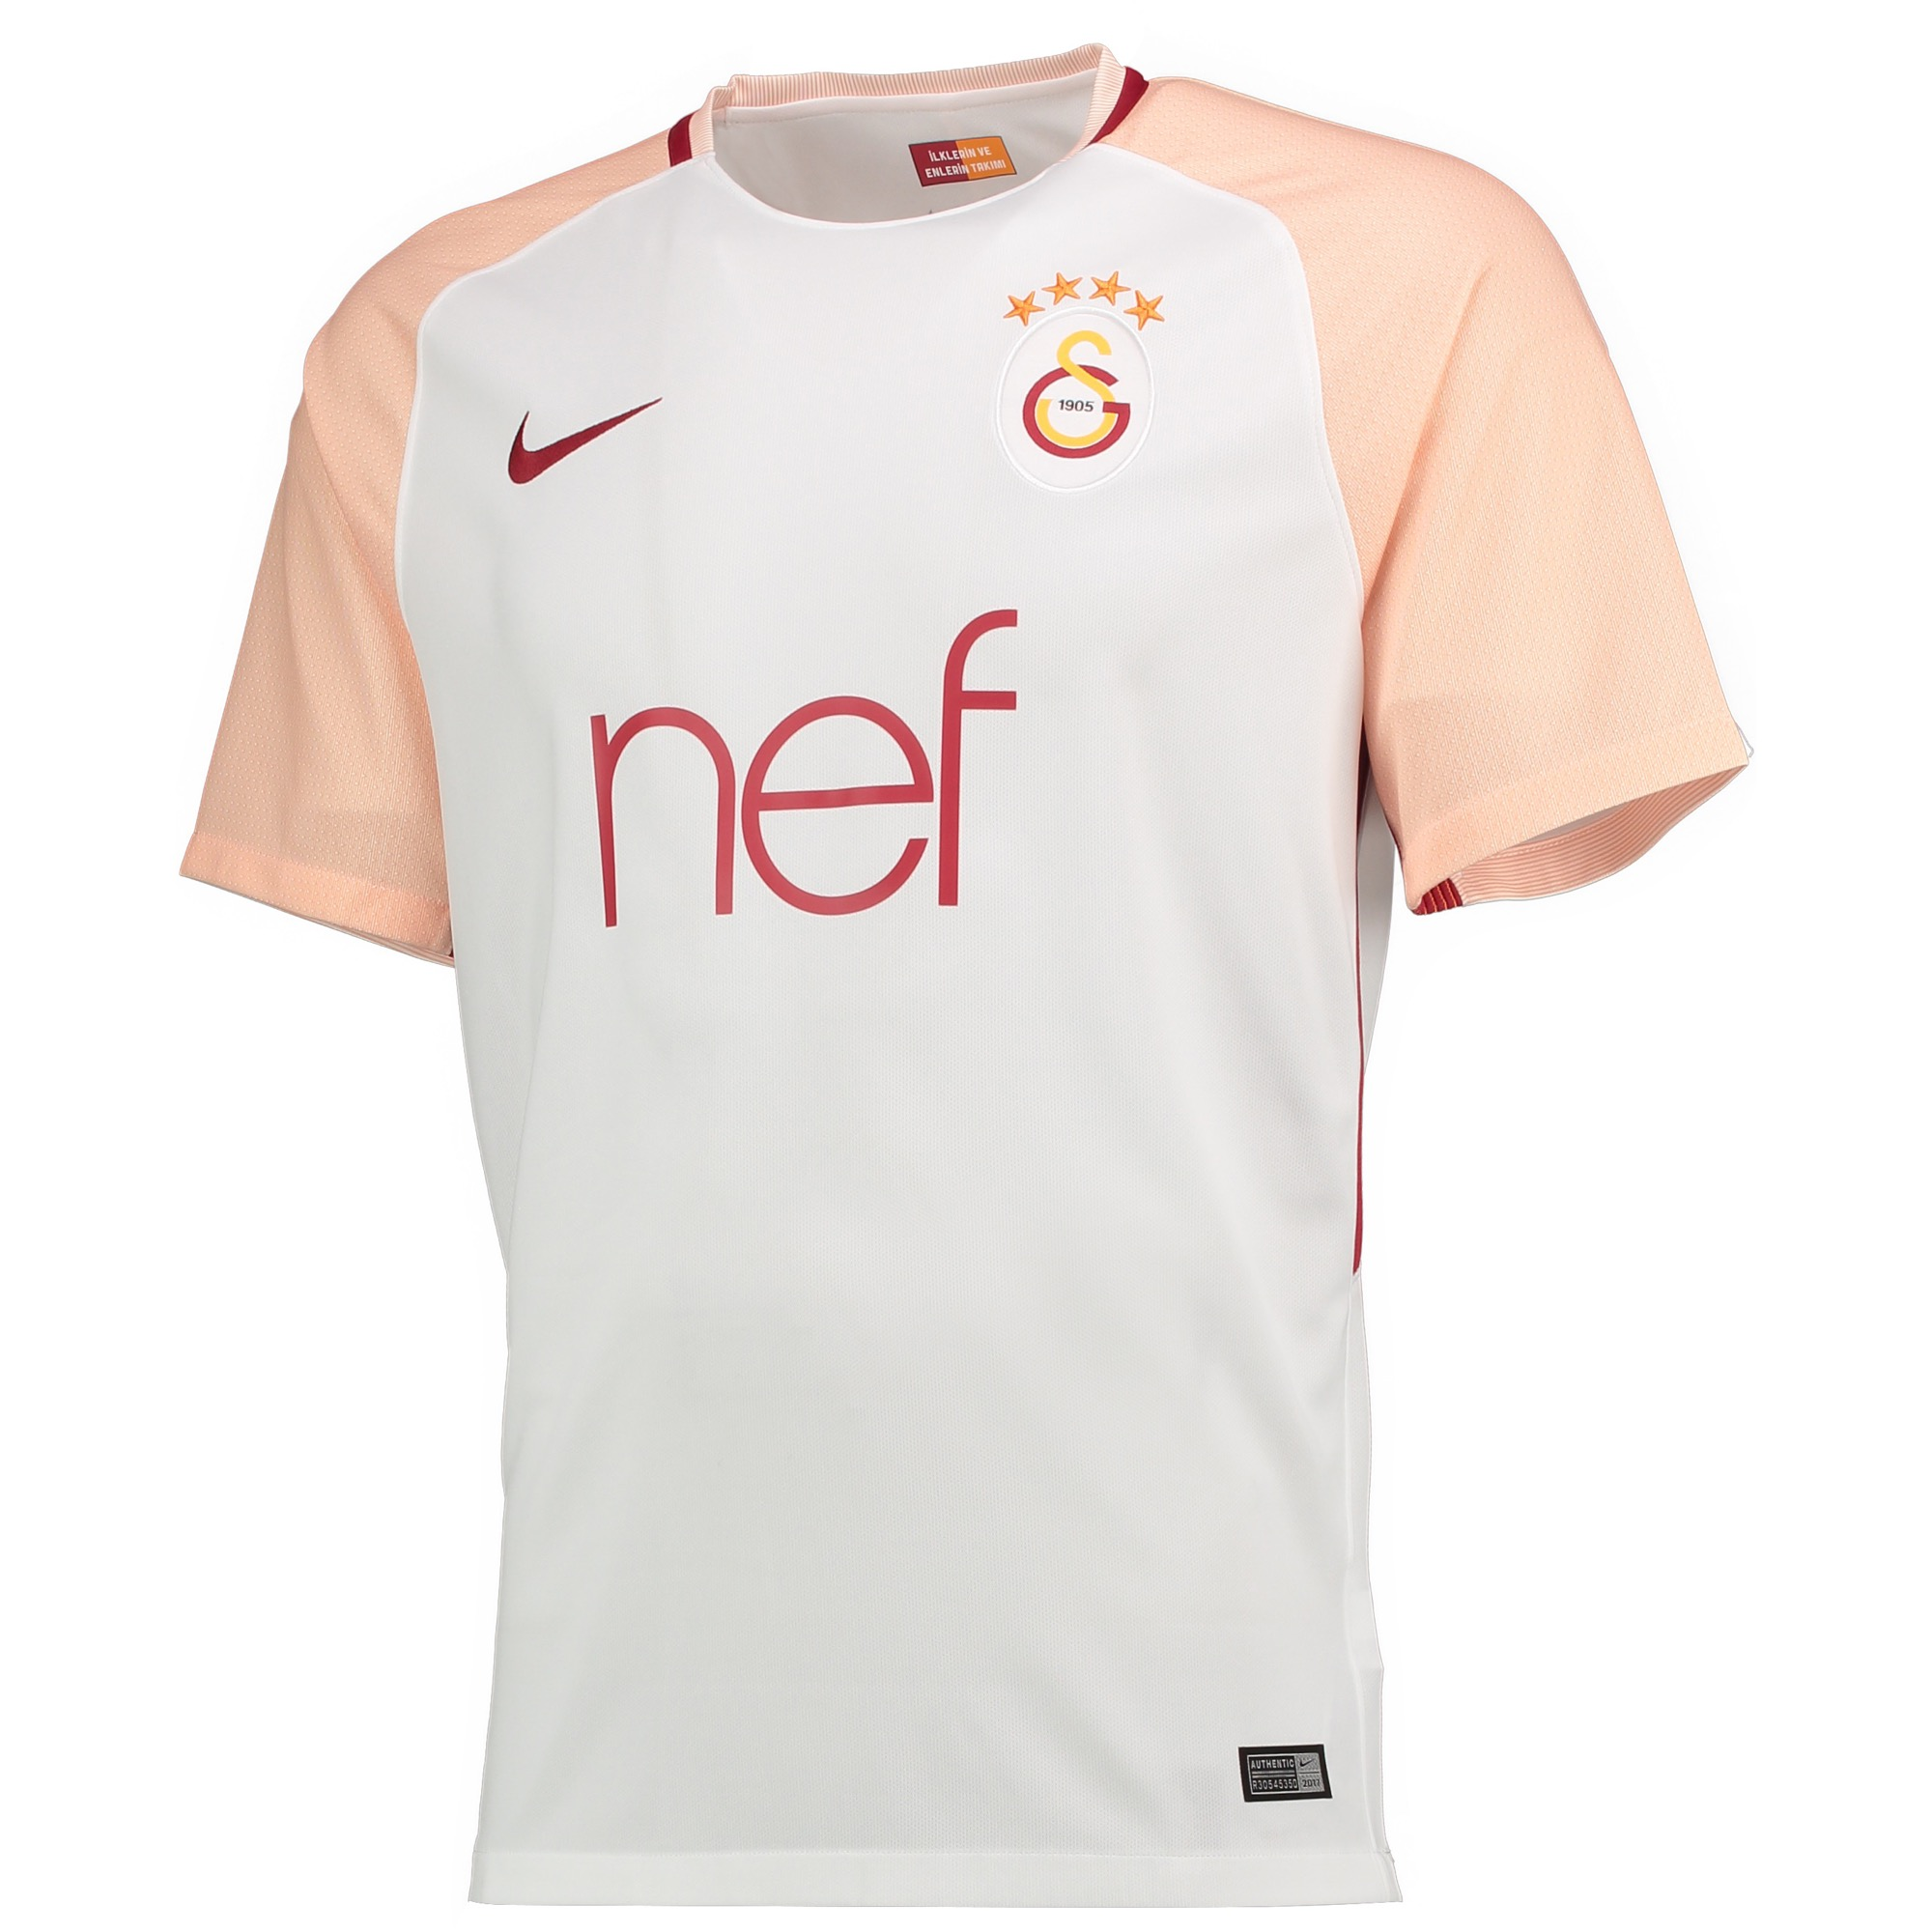 http://www.footballshirtculture.com/images/stories/galatasaray-2017-2018-nike-away-kit/galatasaray_17_18_nike_away_kit_a.jpg